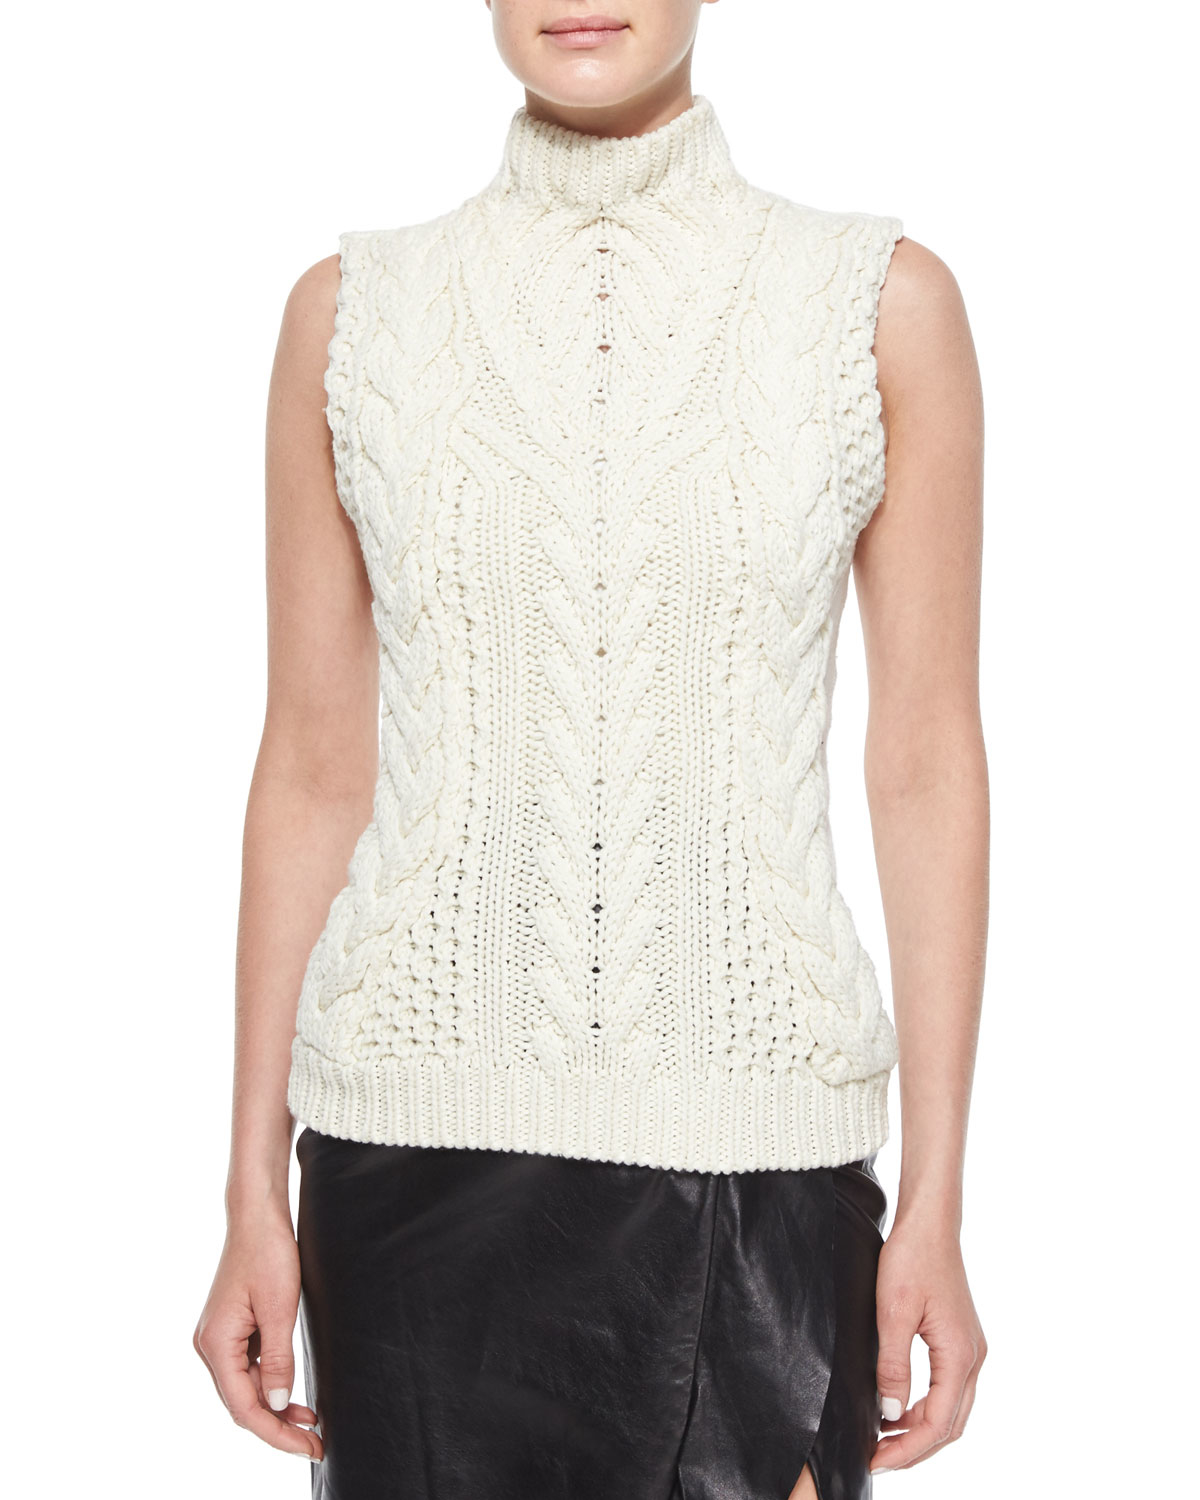 Altuzarra Sleeveless Cable-knit Sweater in Natural Lyst